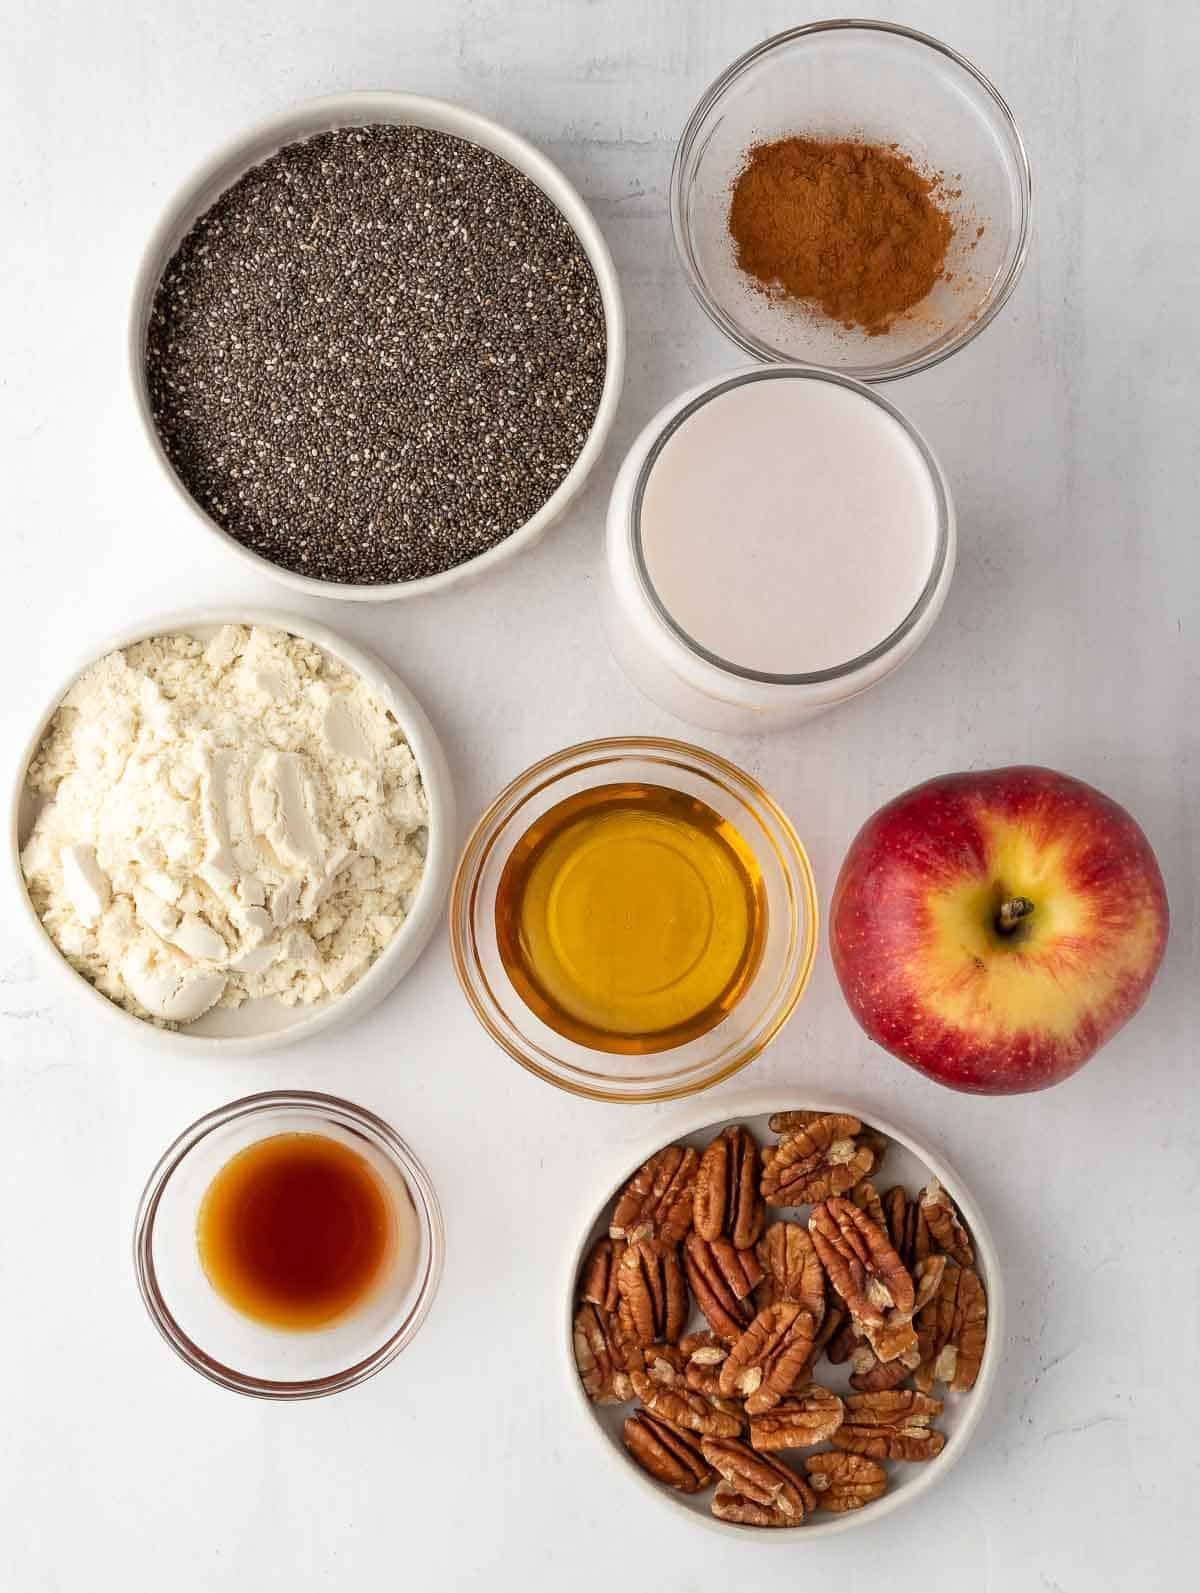 ingredients of the cinnamon apple overnight chia pudding laid out.